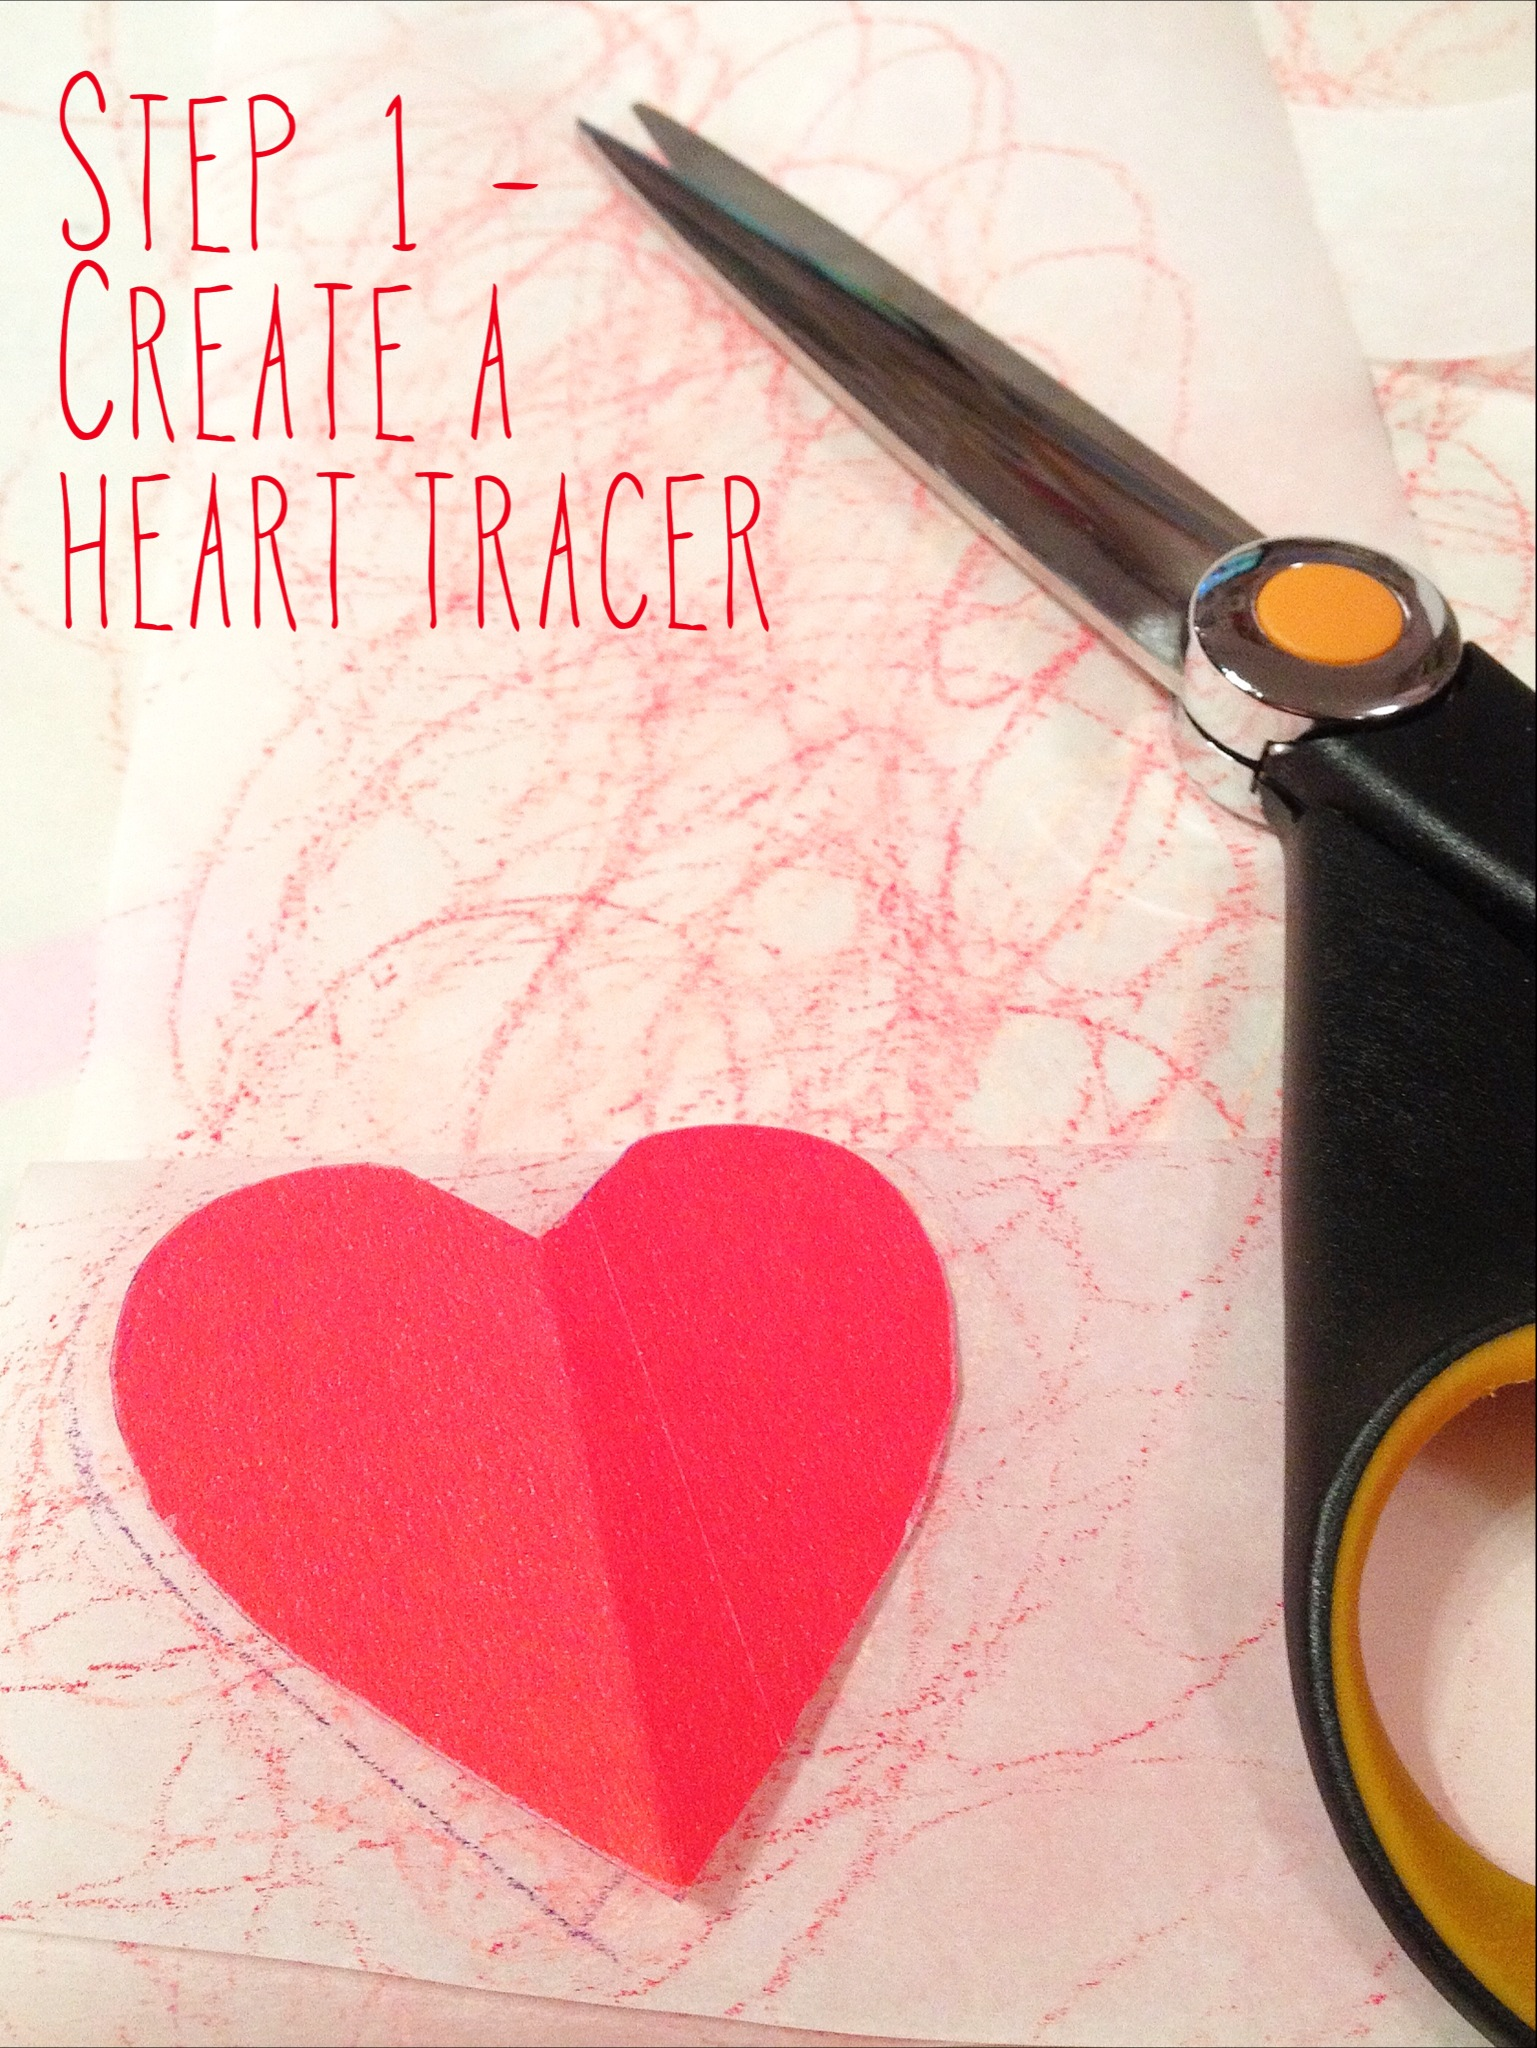 DIY heart garland step 1 - create a heart tracer